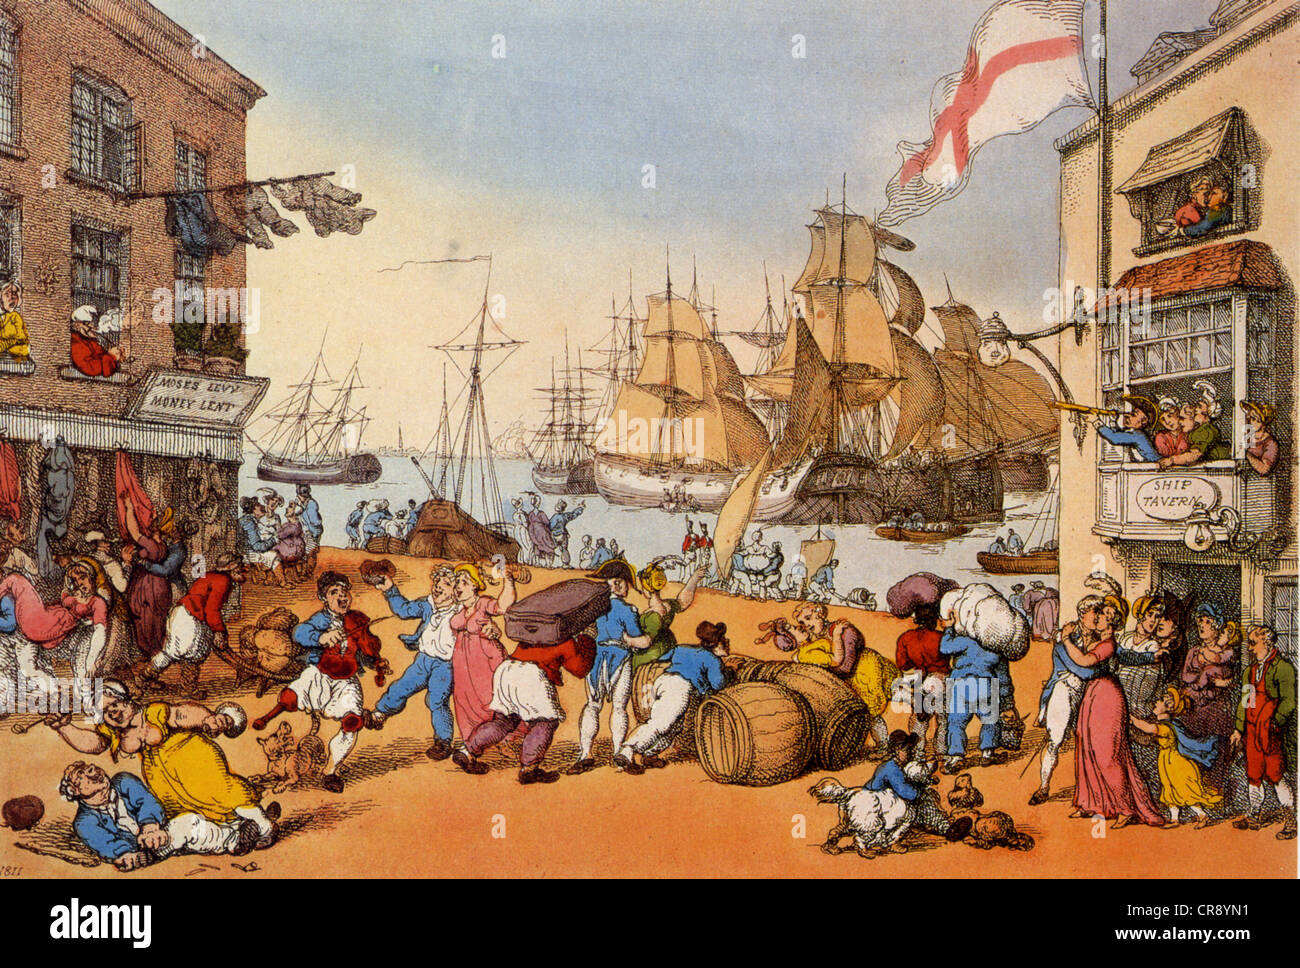 THOMAS ROWLANDSON (1756-1827) His engraving 'Portsmouth Point' in 1811 - Stock Image